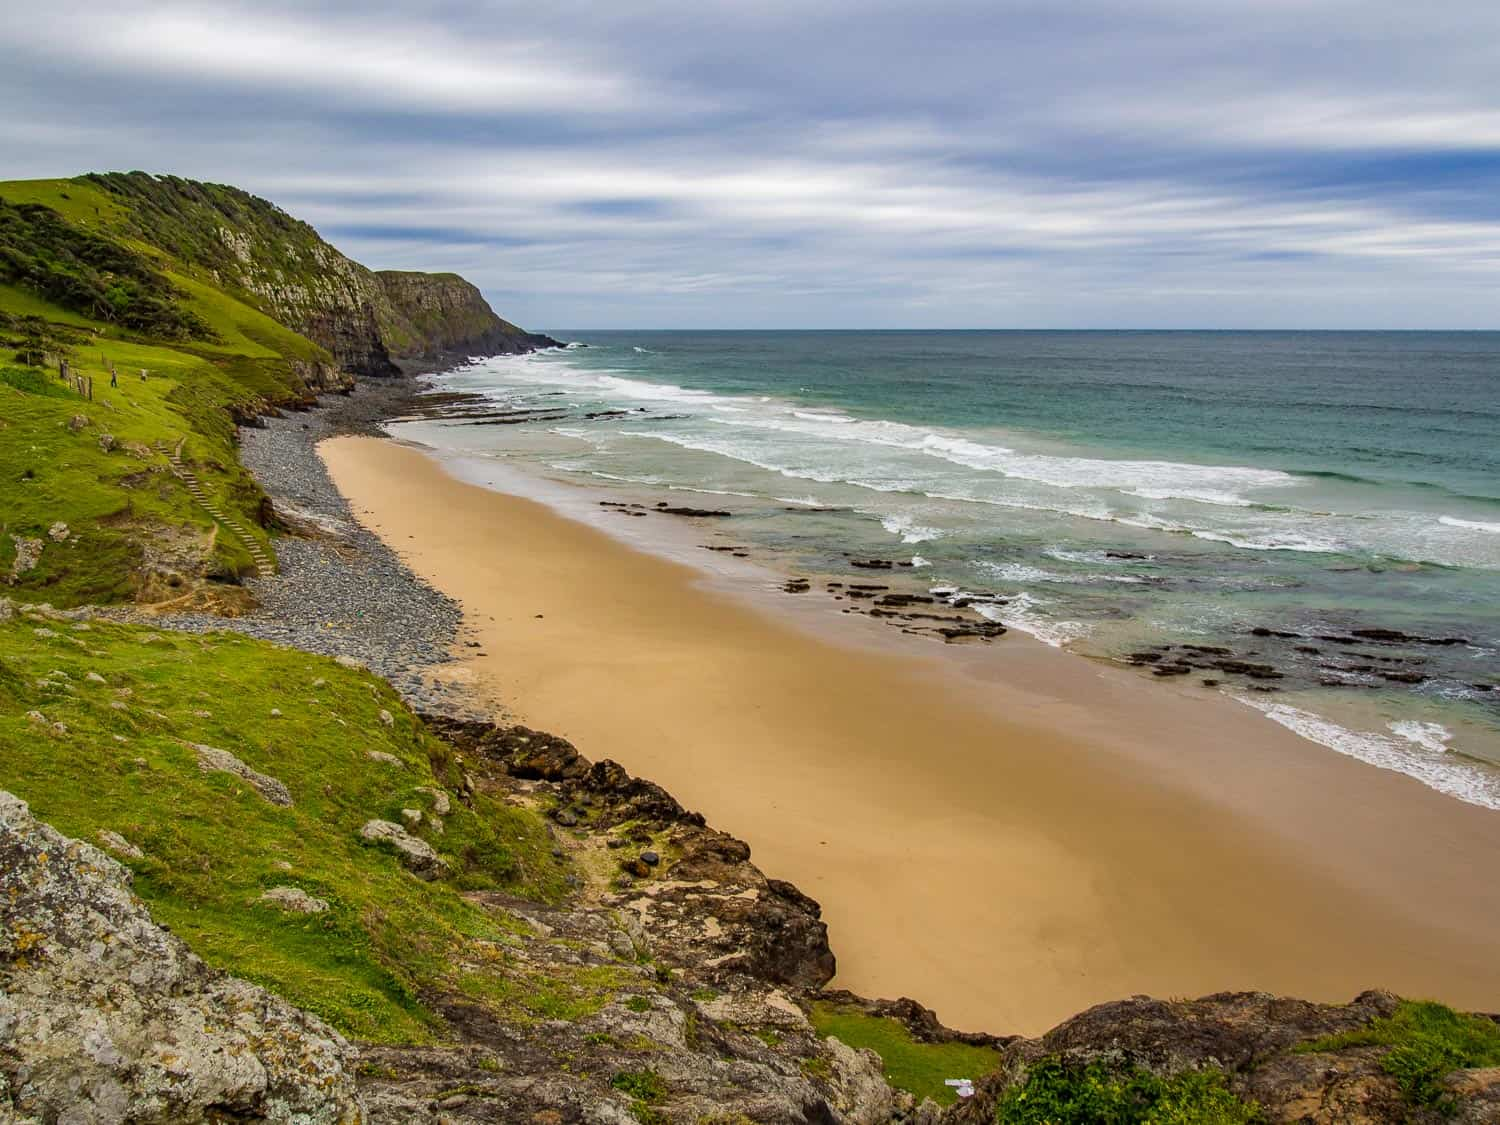 Coffee Bay on the Wild Coast is a great stop on a South Africa road trip.